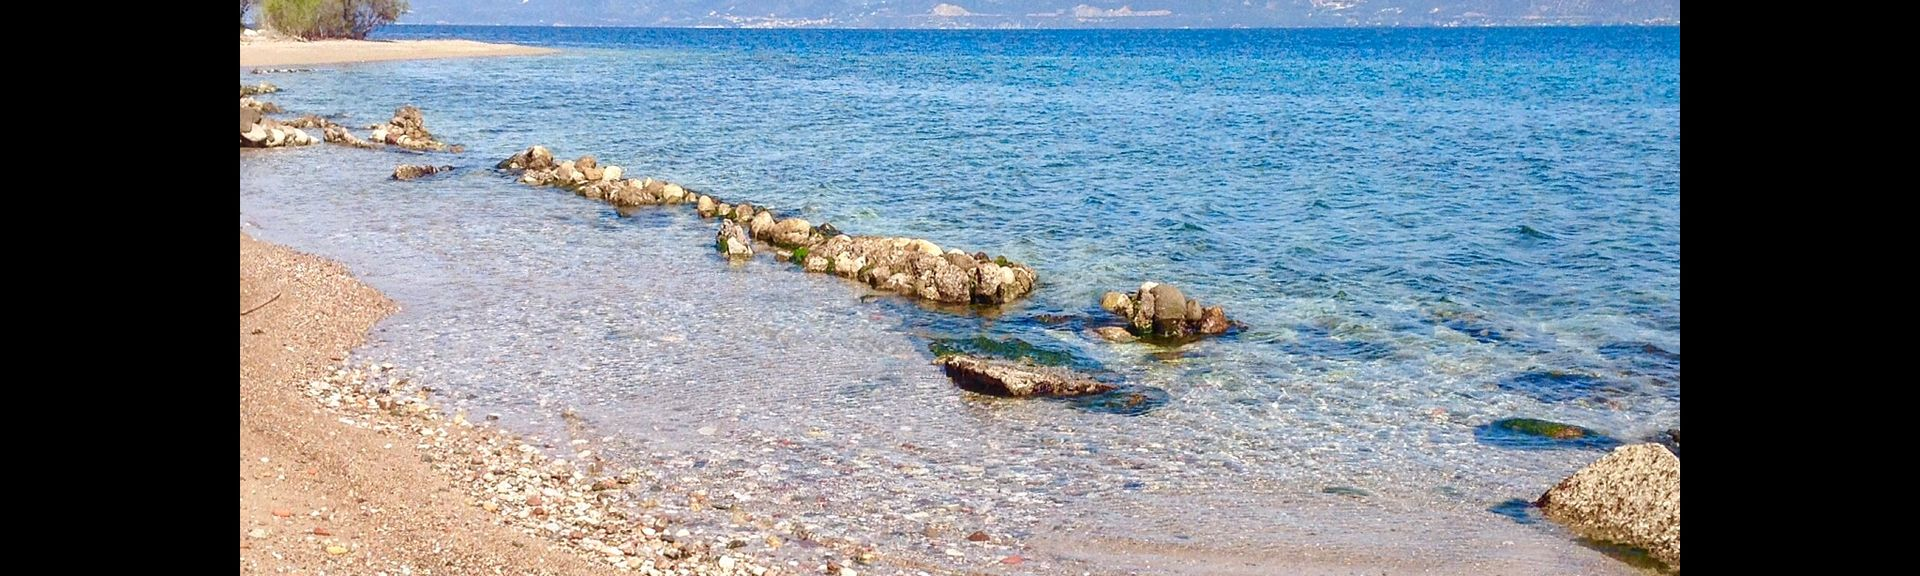 Patras, Grecia Occidental, Grecia